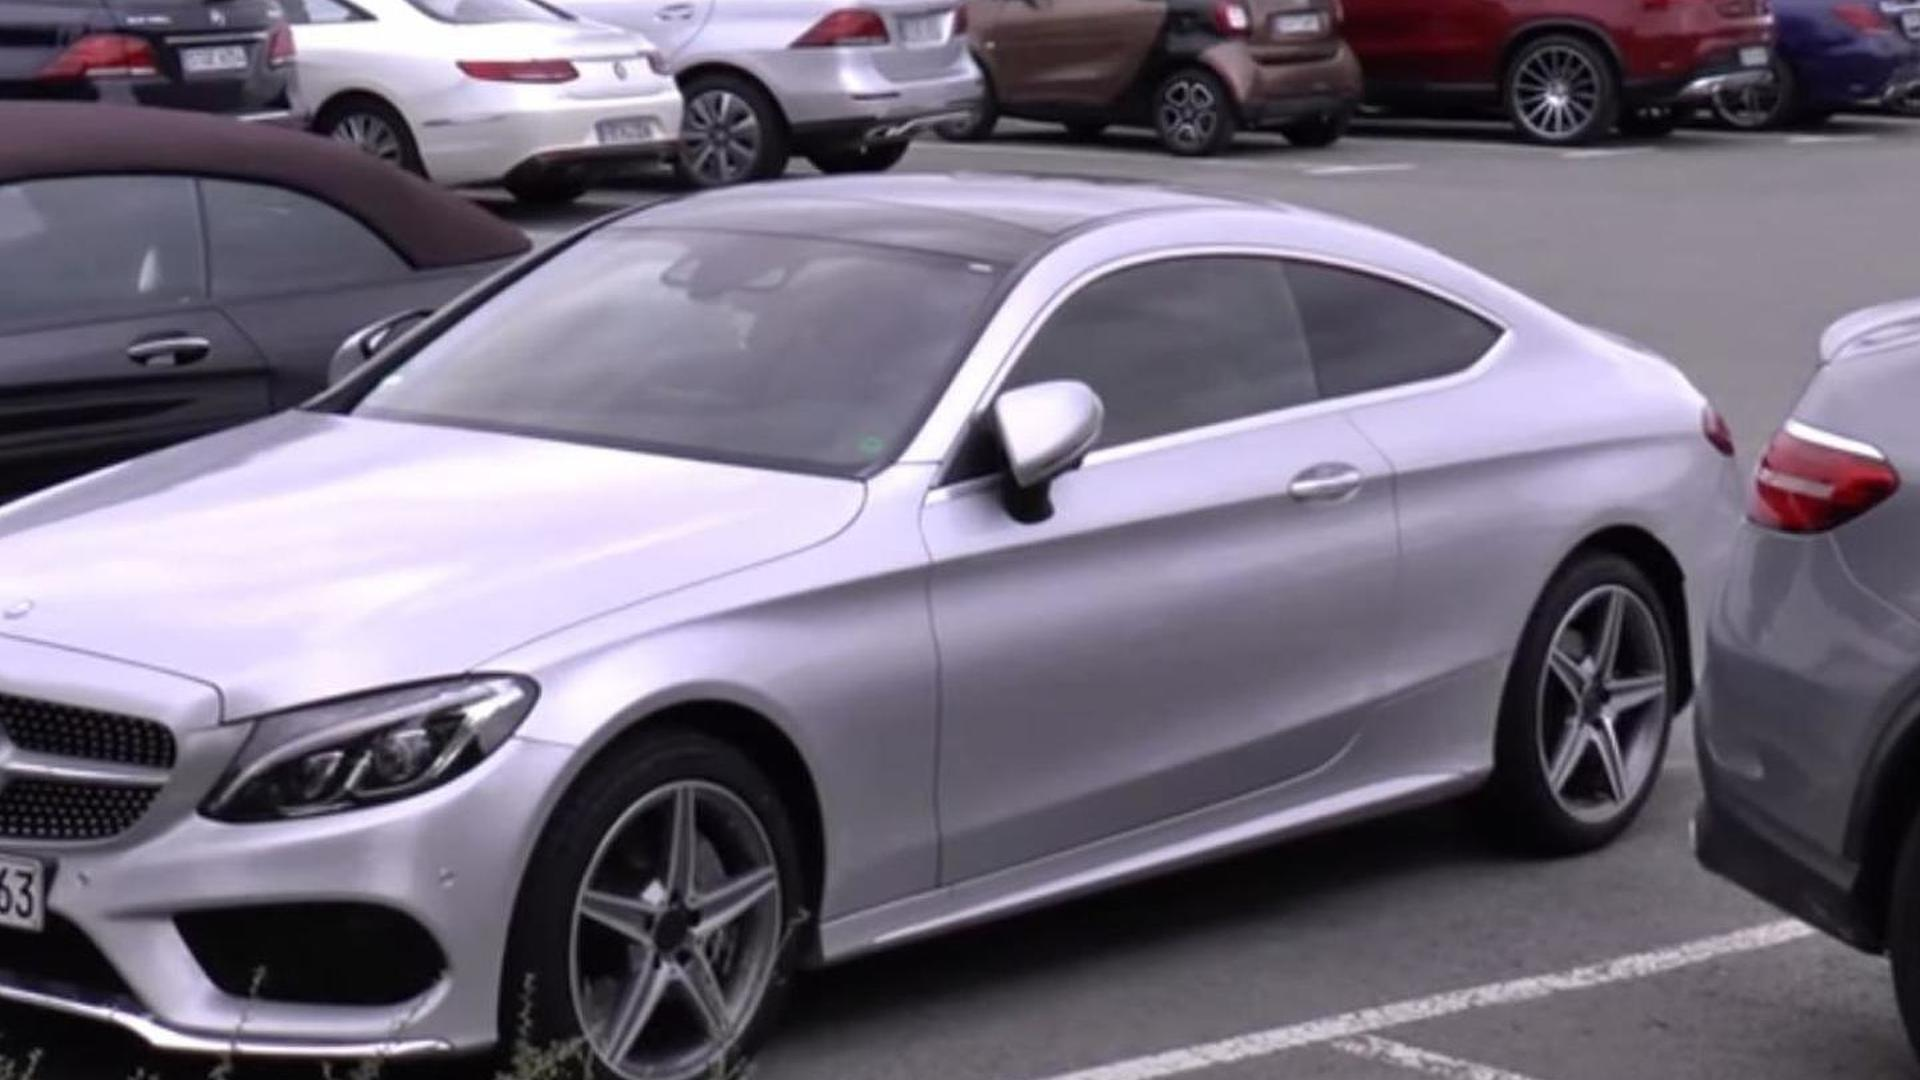 Mercedes Benz C Cl Coupe And S Cabriolet Spotted In The Metal For First Time Videos